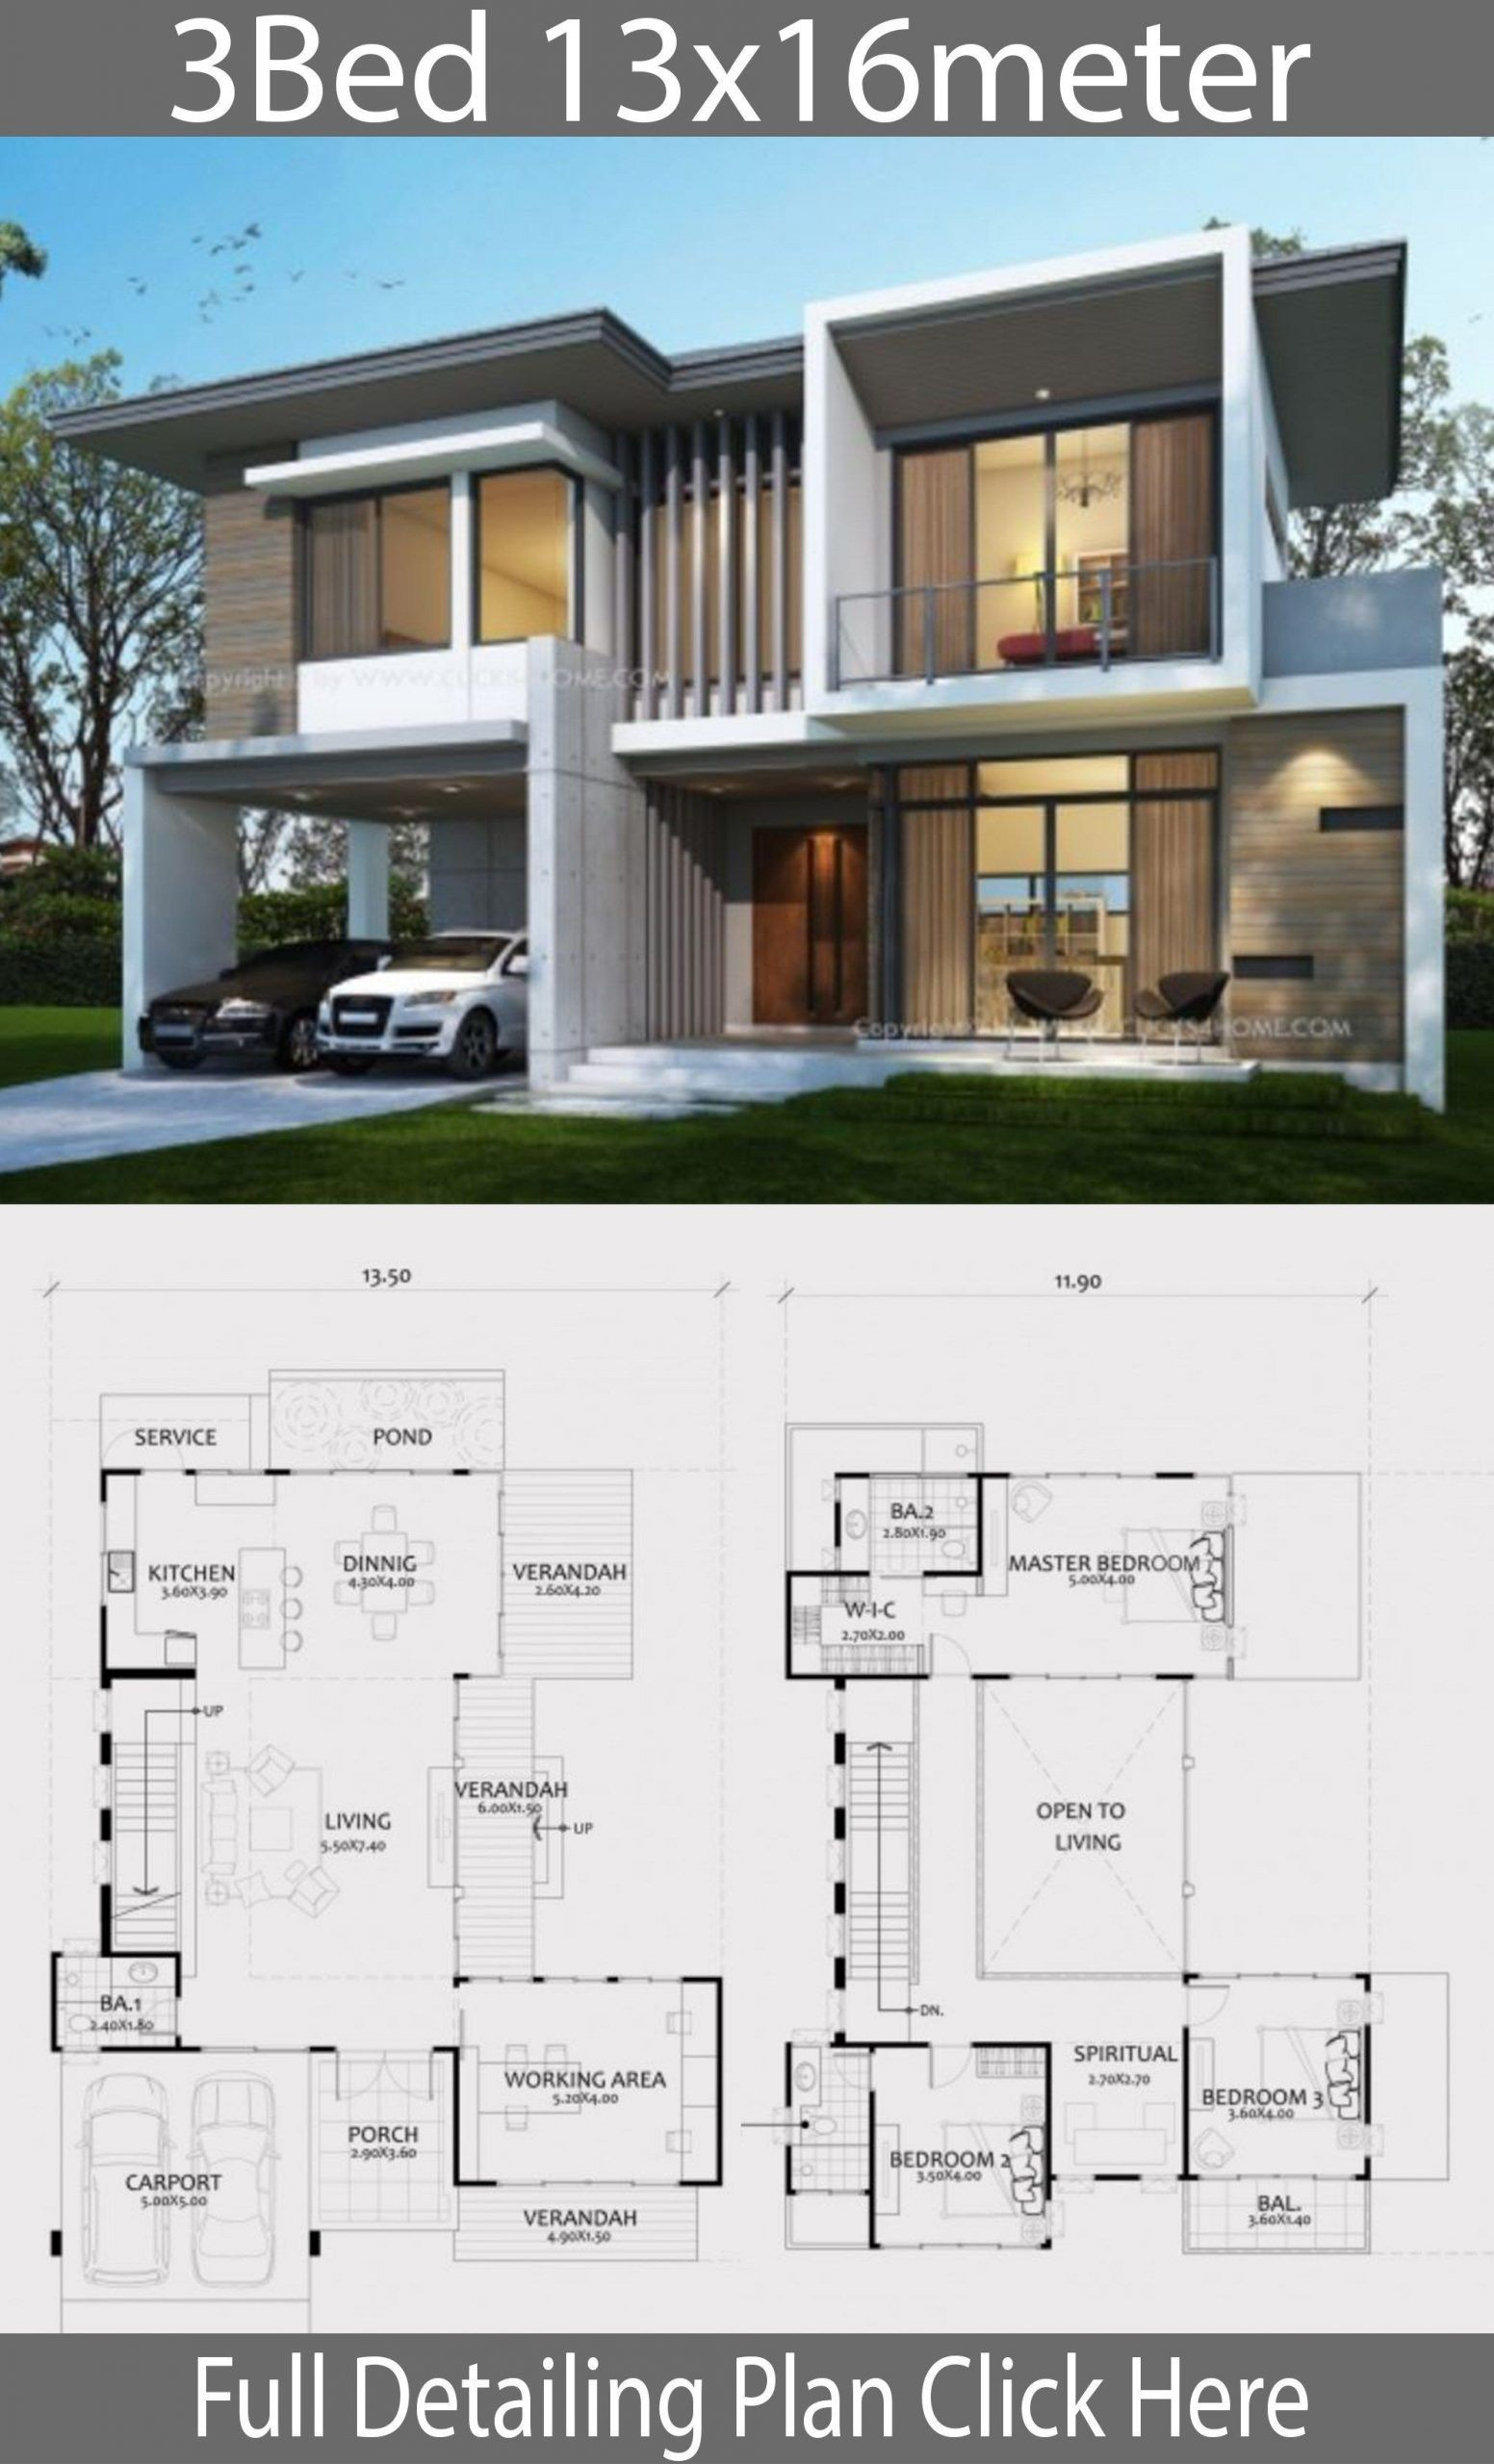 Home Design Plan 13x16m With 3 Bedrooms With Images In 2021 Beautiful House Plans Modern House Plans House Designs Exterior